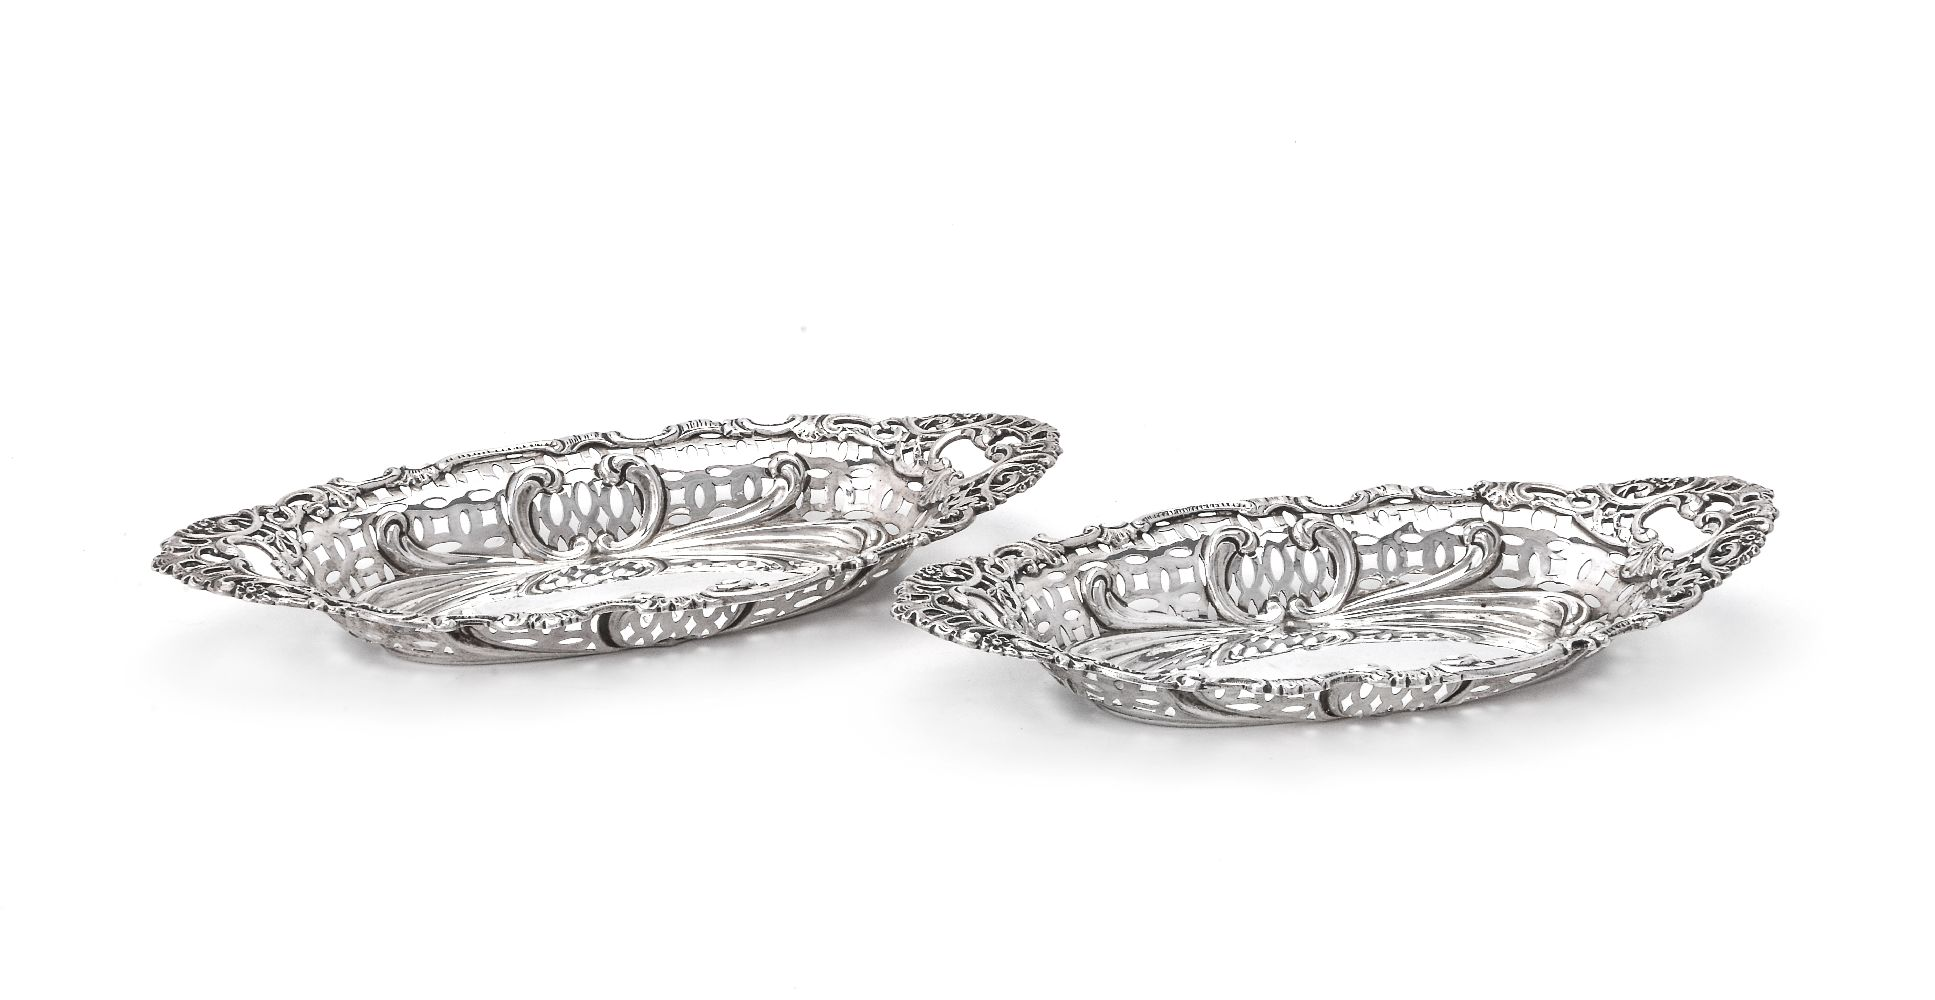 Lot 608 - A pair of Edwardian silver shaped navette sweet dishes by Henry Matthews